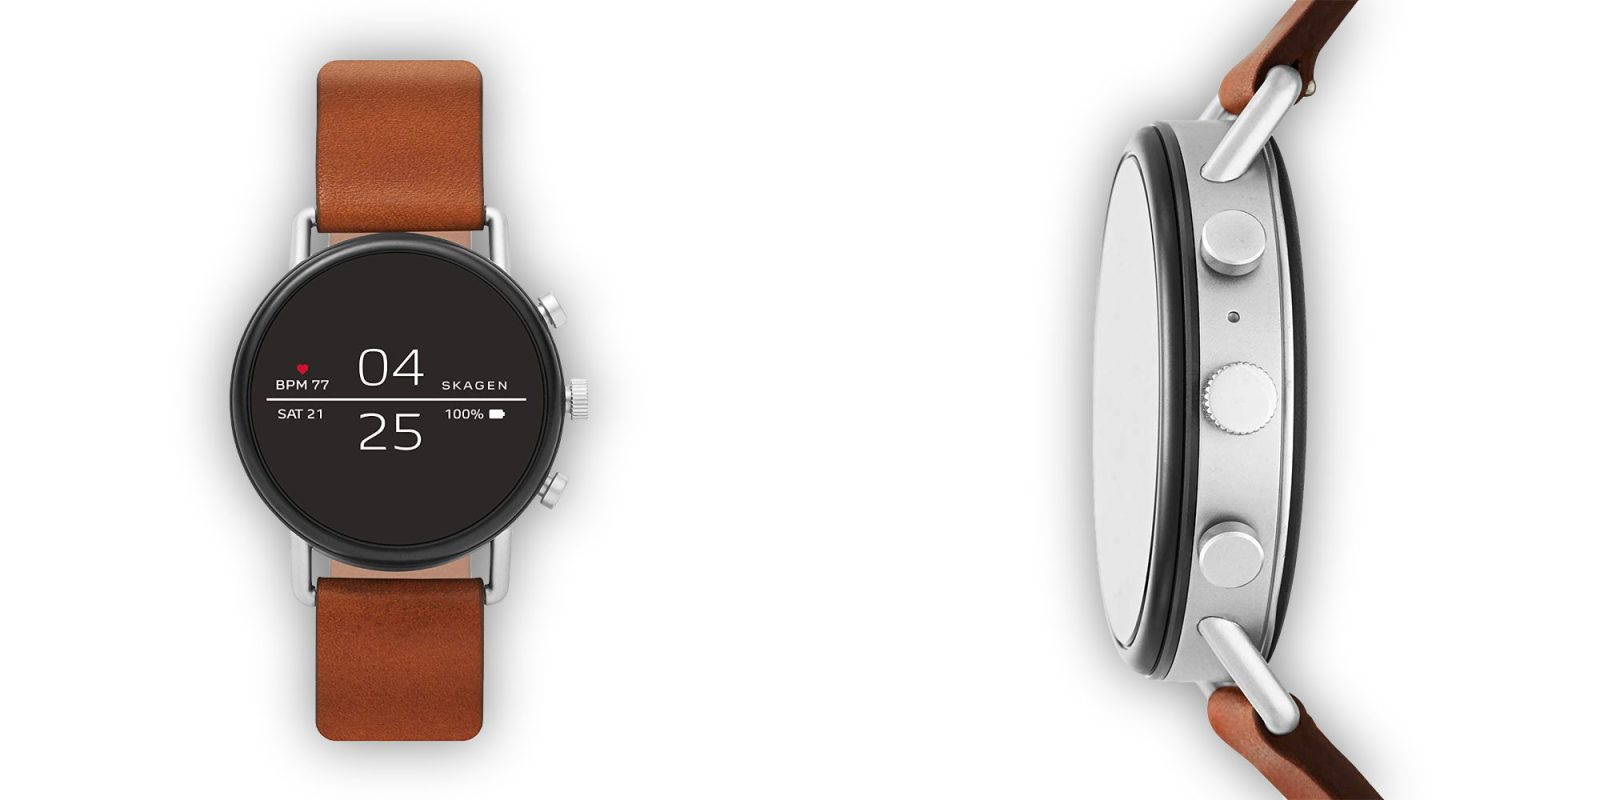 Skagen Falster 2 Smartwatch has Wear OS, Google Pay, more: $199 (Save $95+)